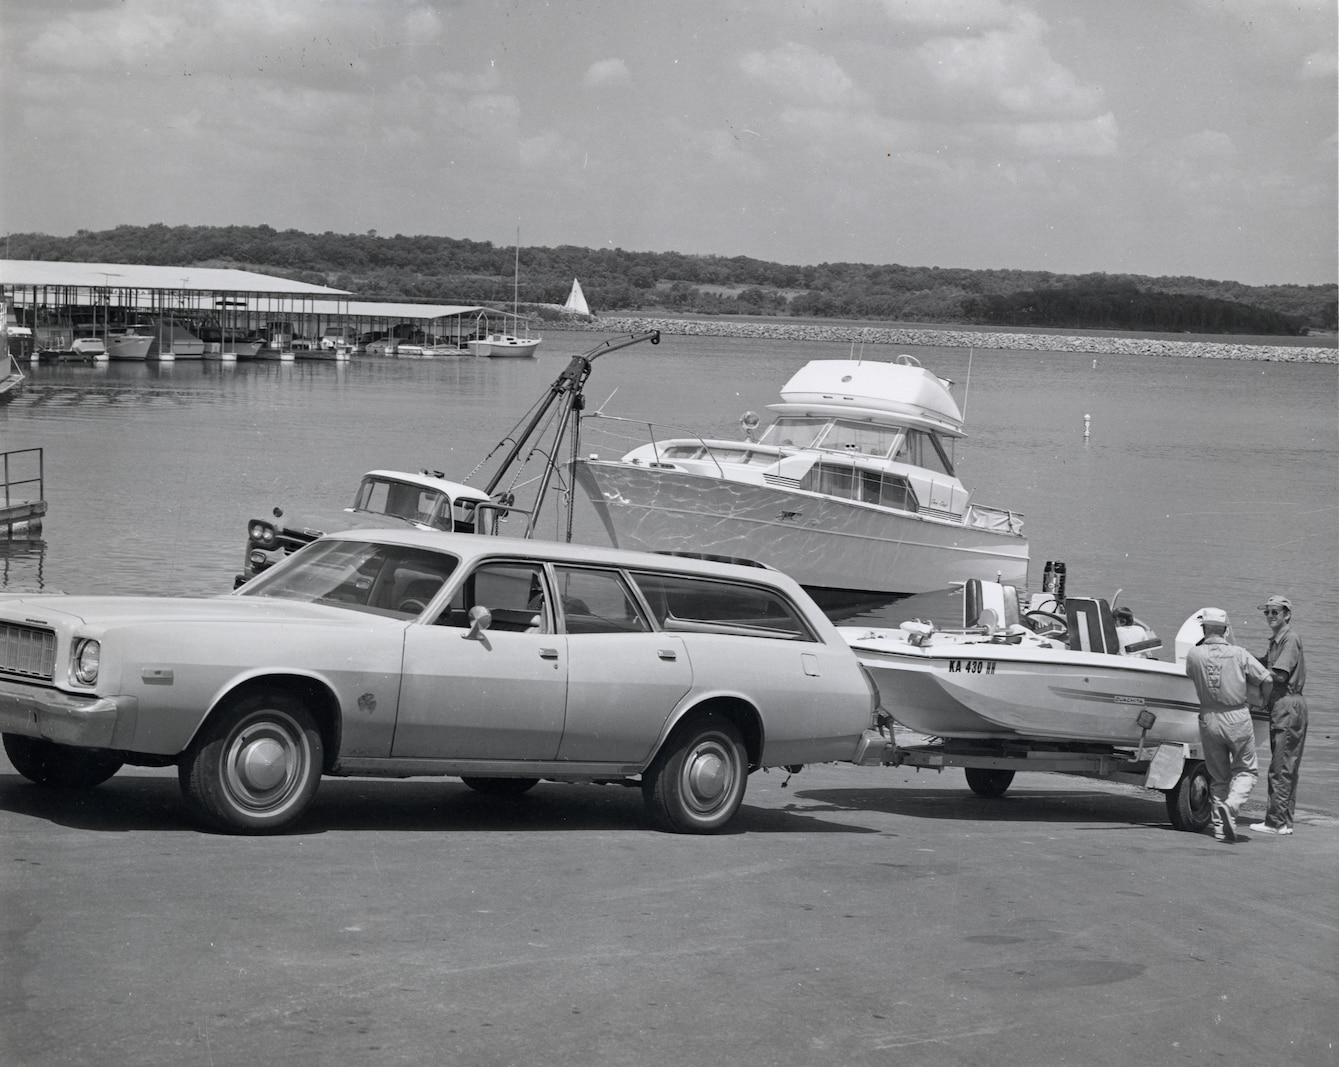 A station wagon backs a small boat down a ramp to the shoreline as two men watch